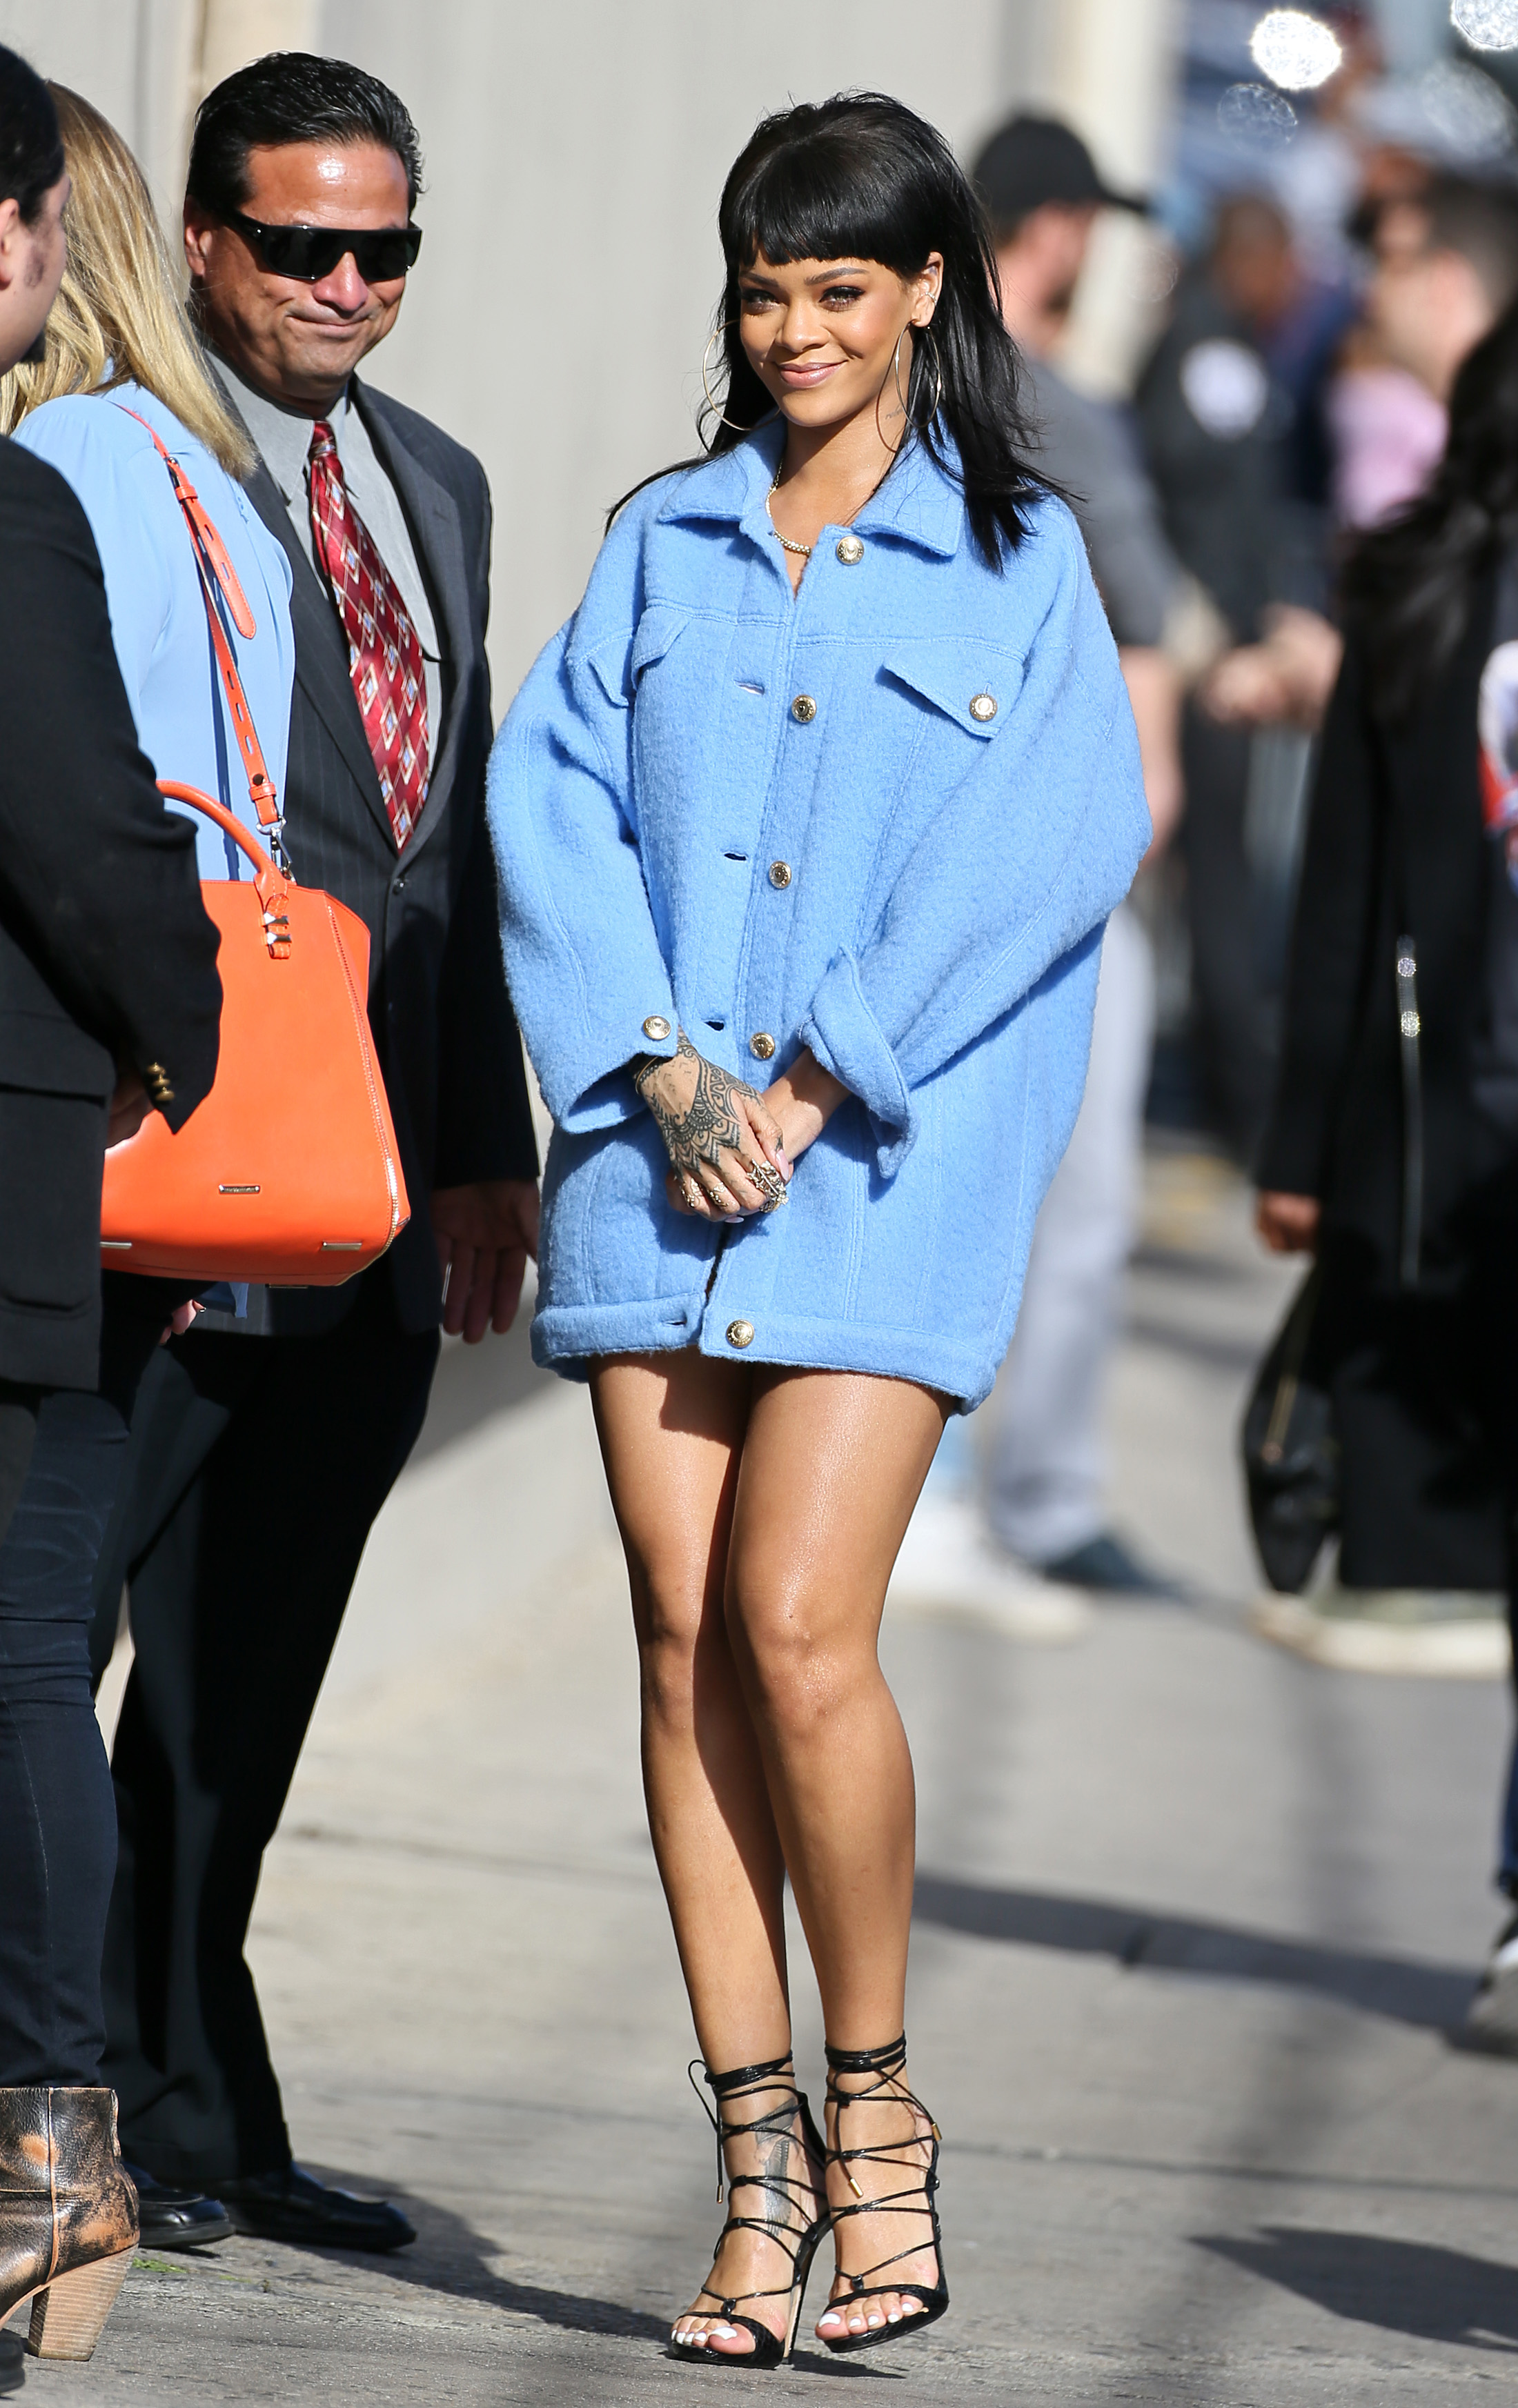 Rihanna Summer Street Style Images Galleries With A Bite